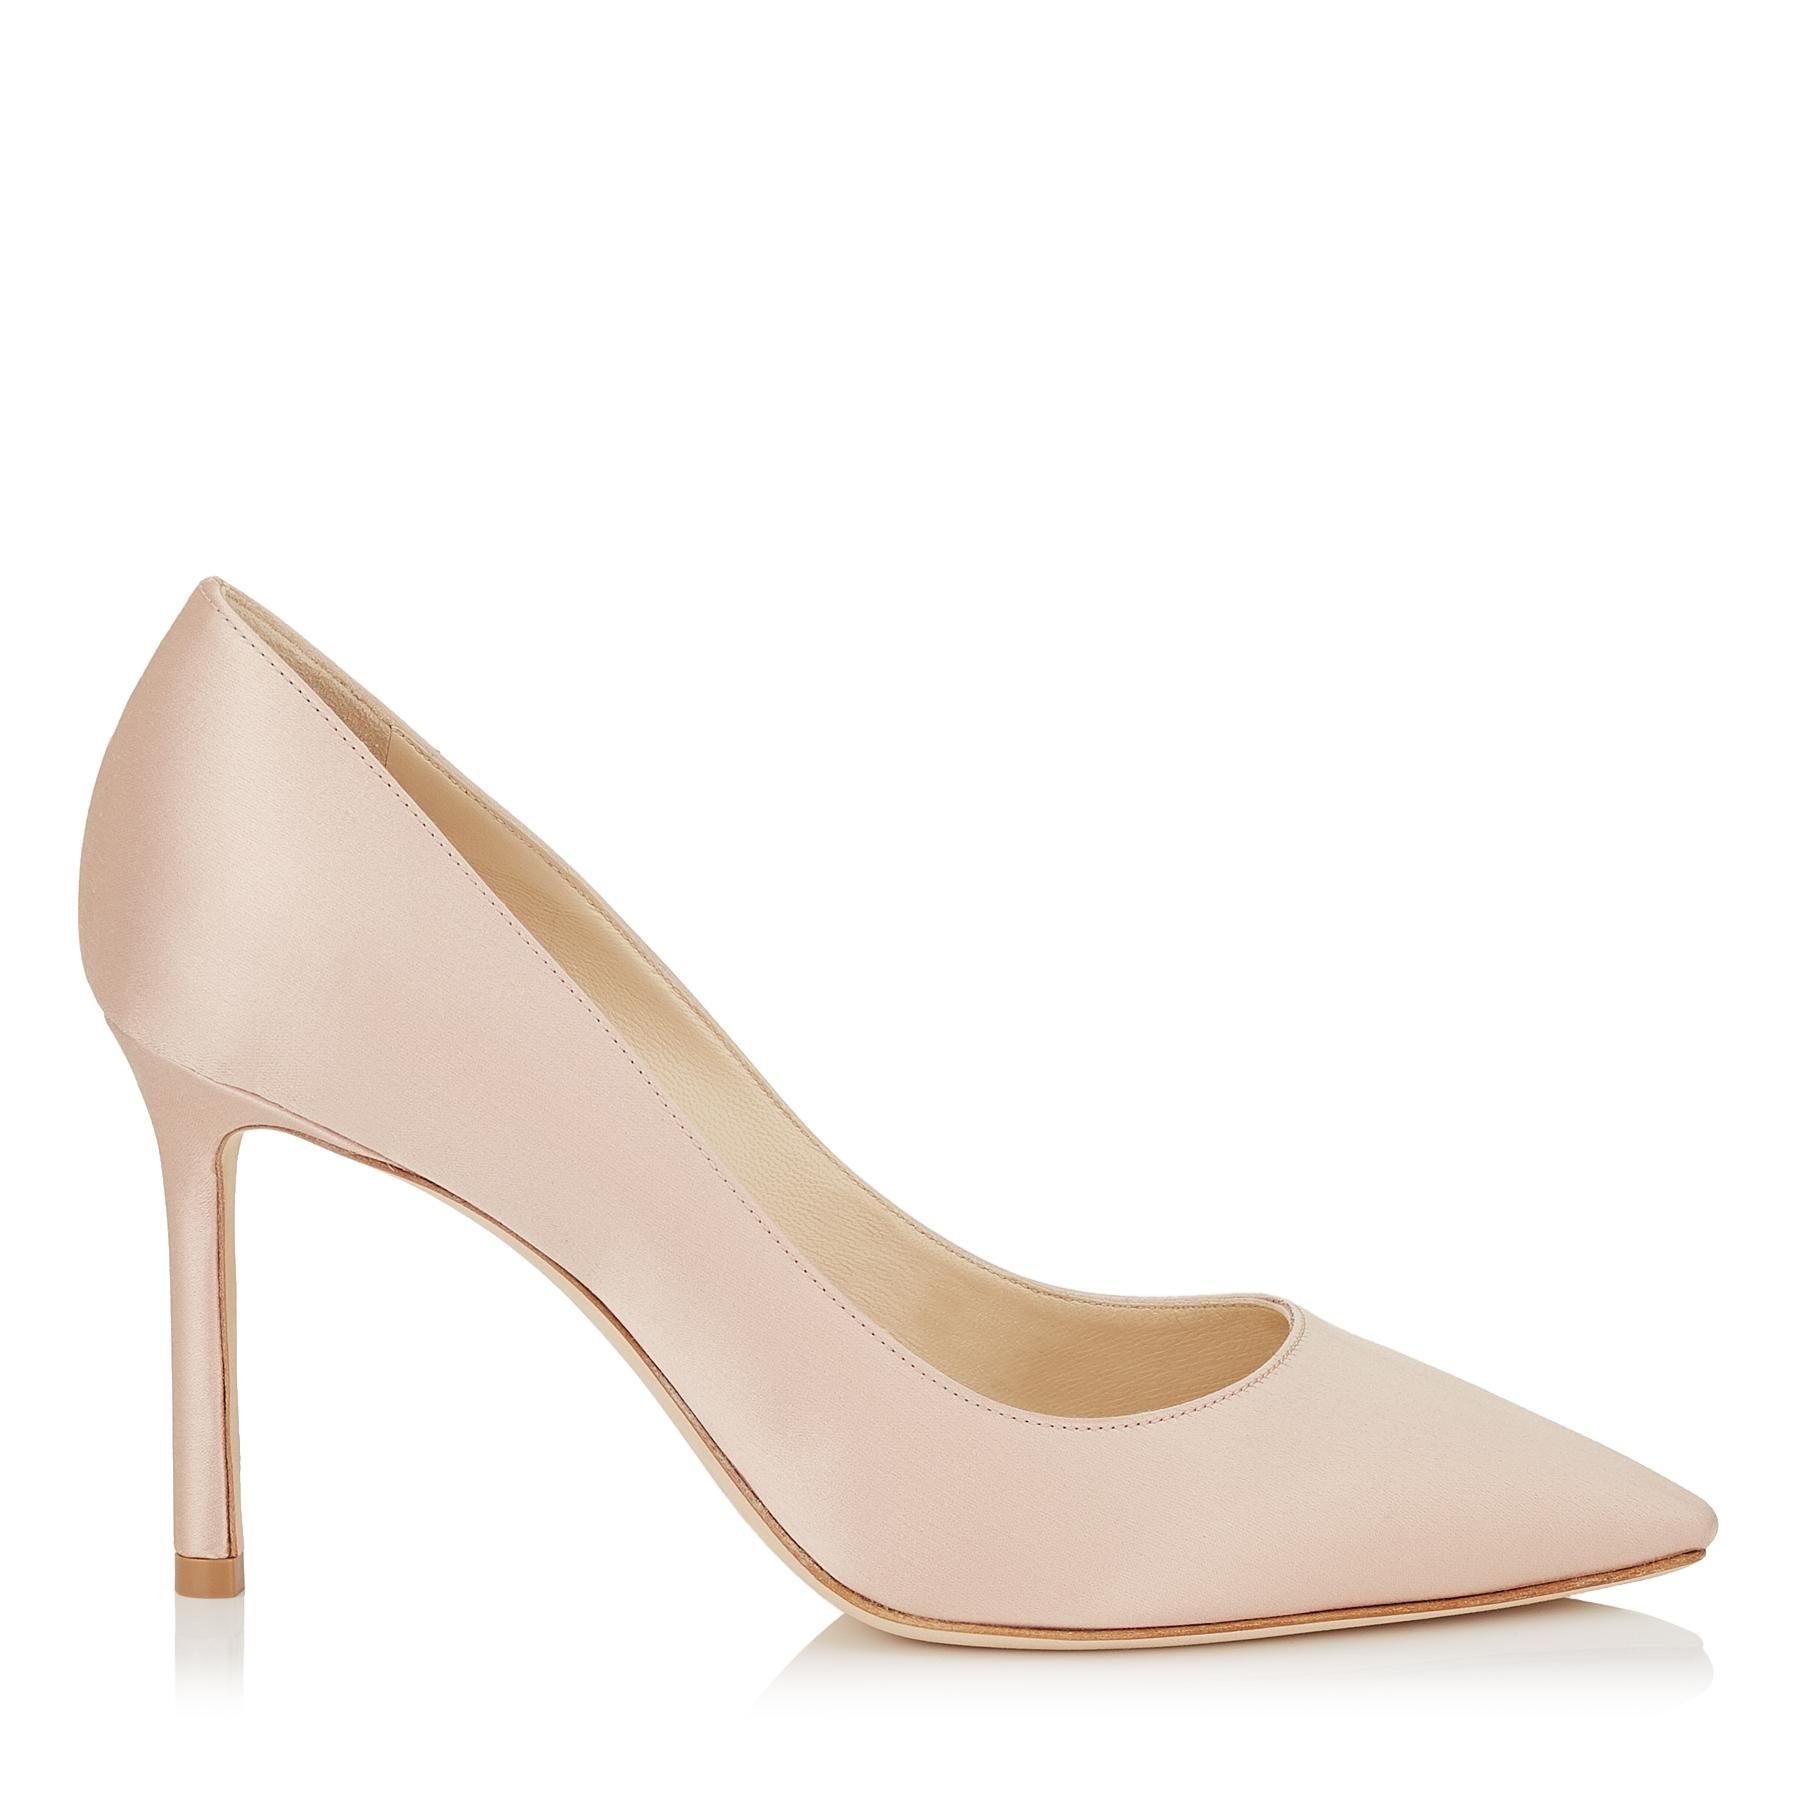 57e4d13bda3 Jimmy Choo. Women s Pink Romy 85 Dusty Rose Satin Pointy Toe Court Shoes ...